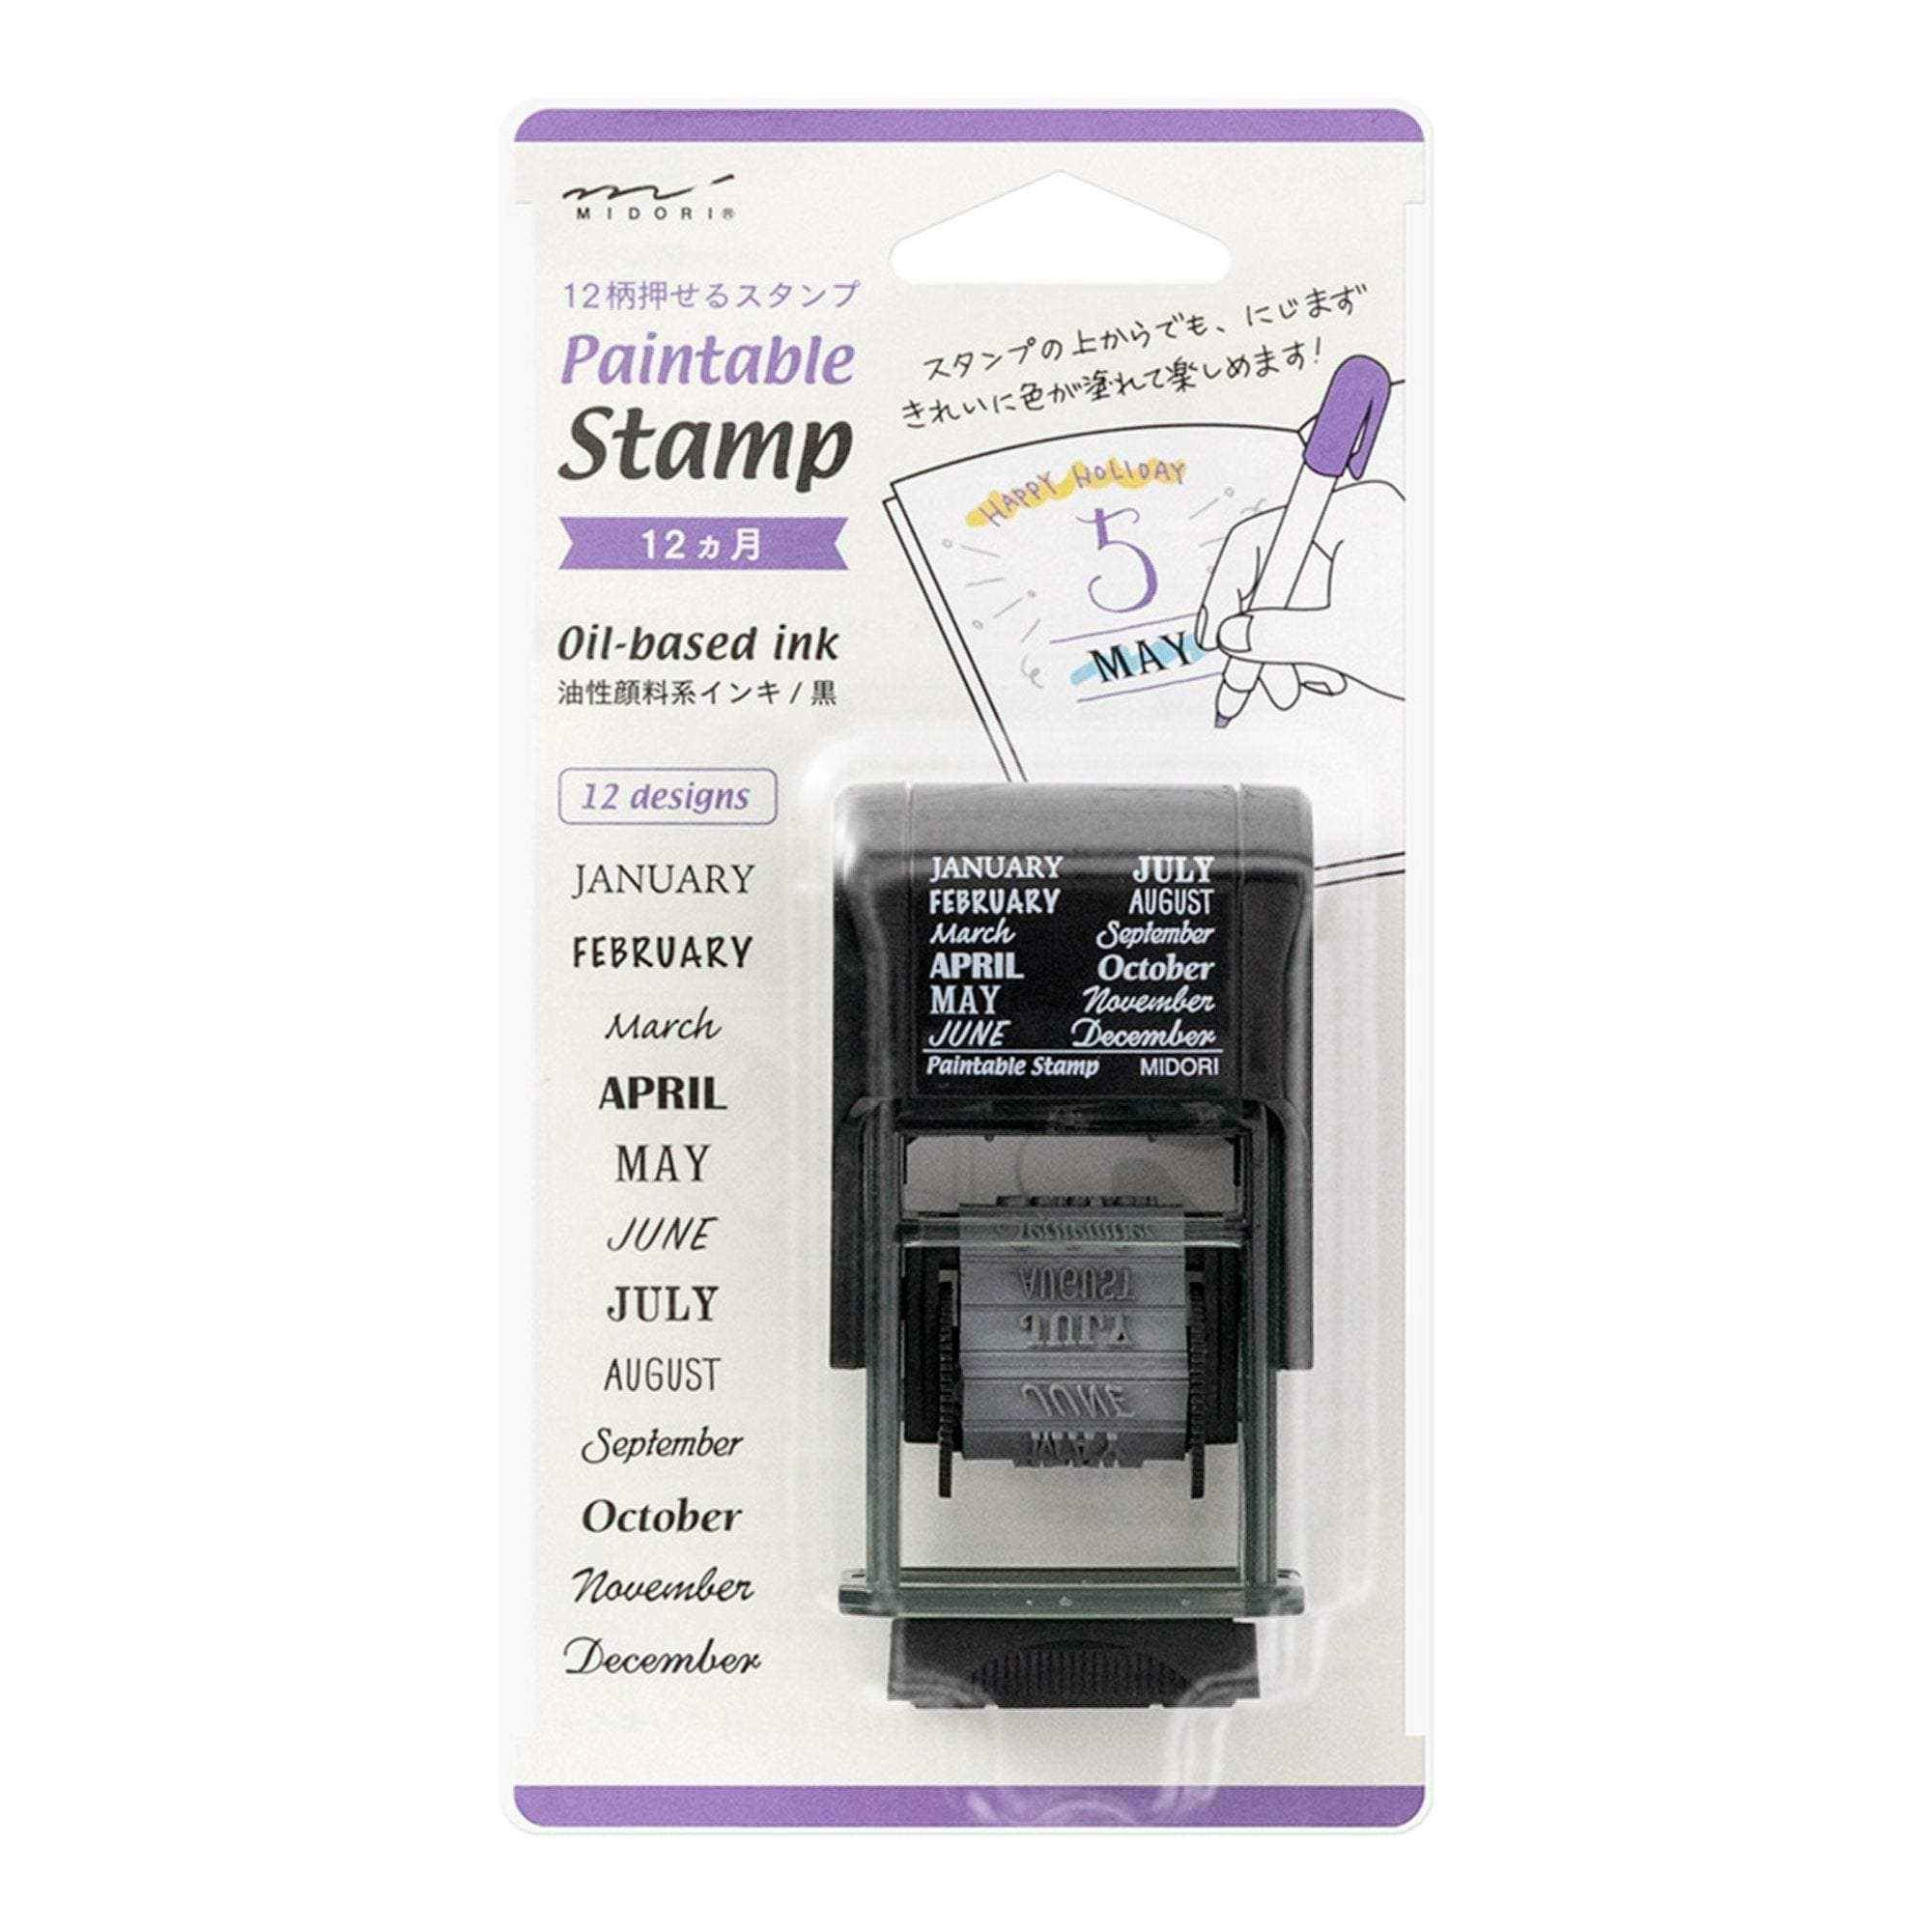 MIDORI Paintable Stamp Re-Inkable Self-Inking Stamp | Monthly - The Stationery Life!